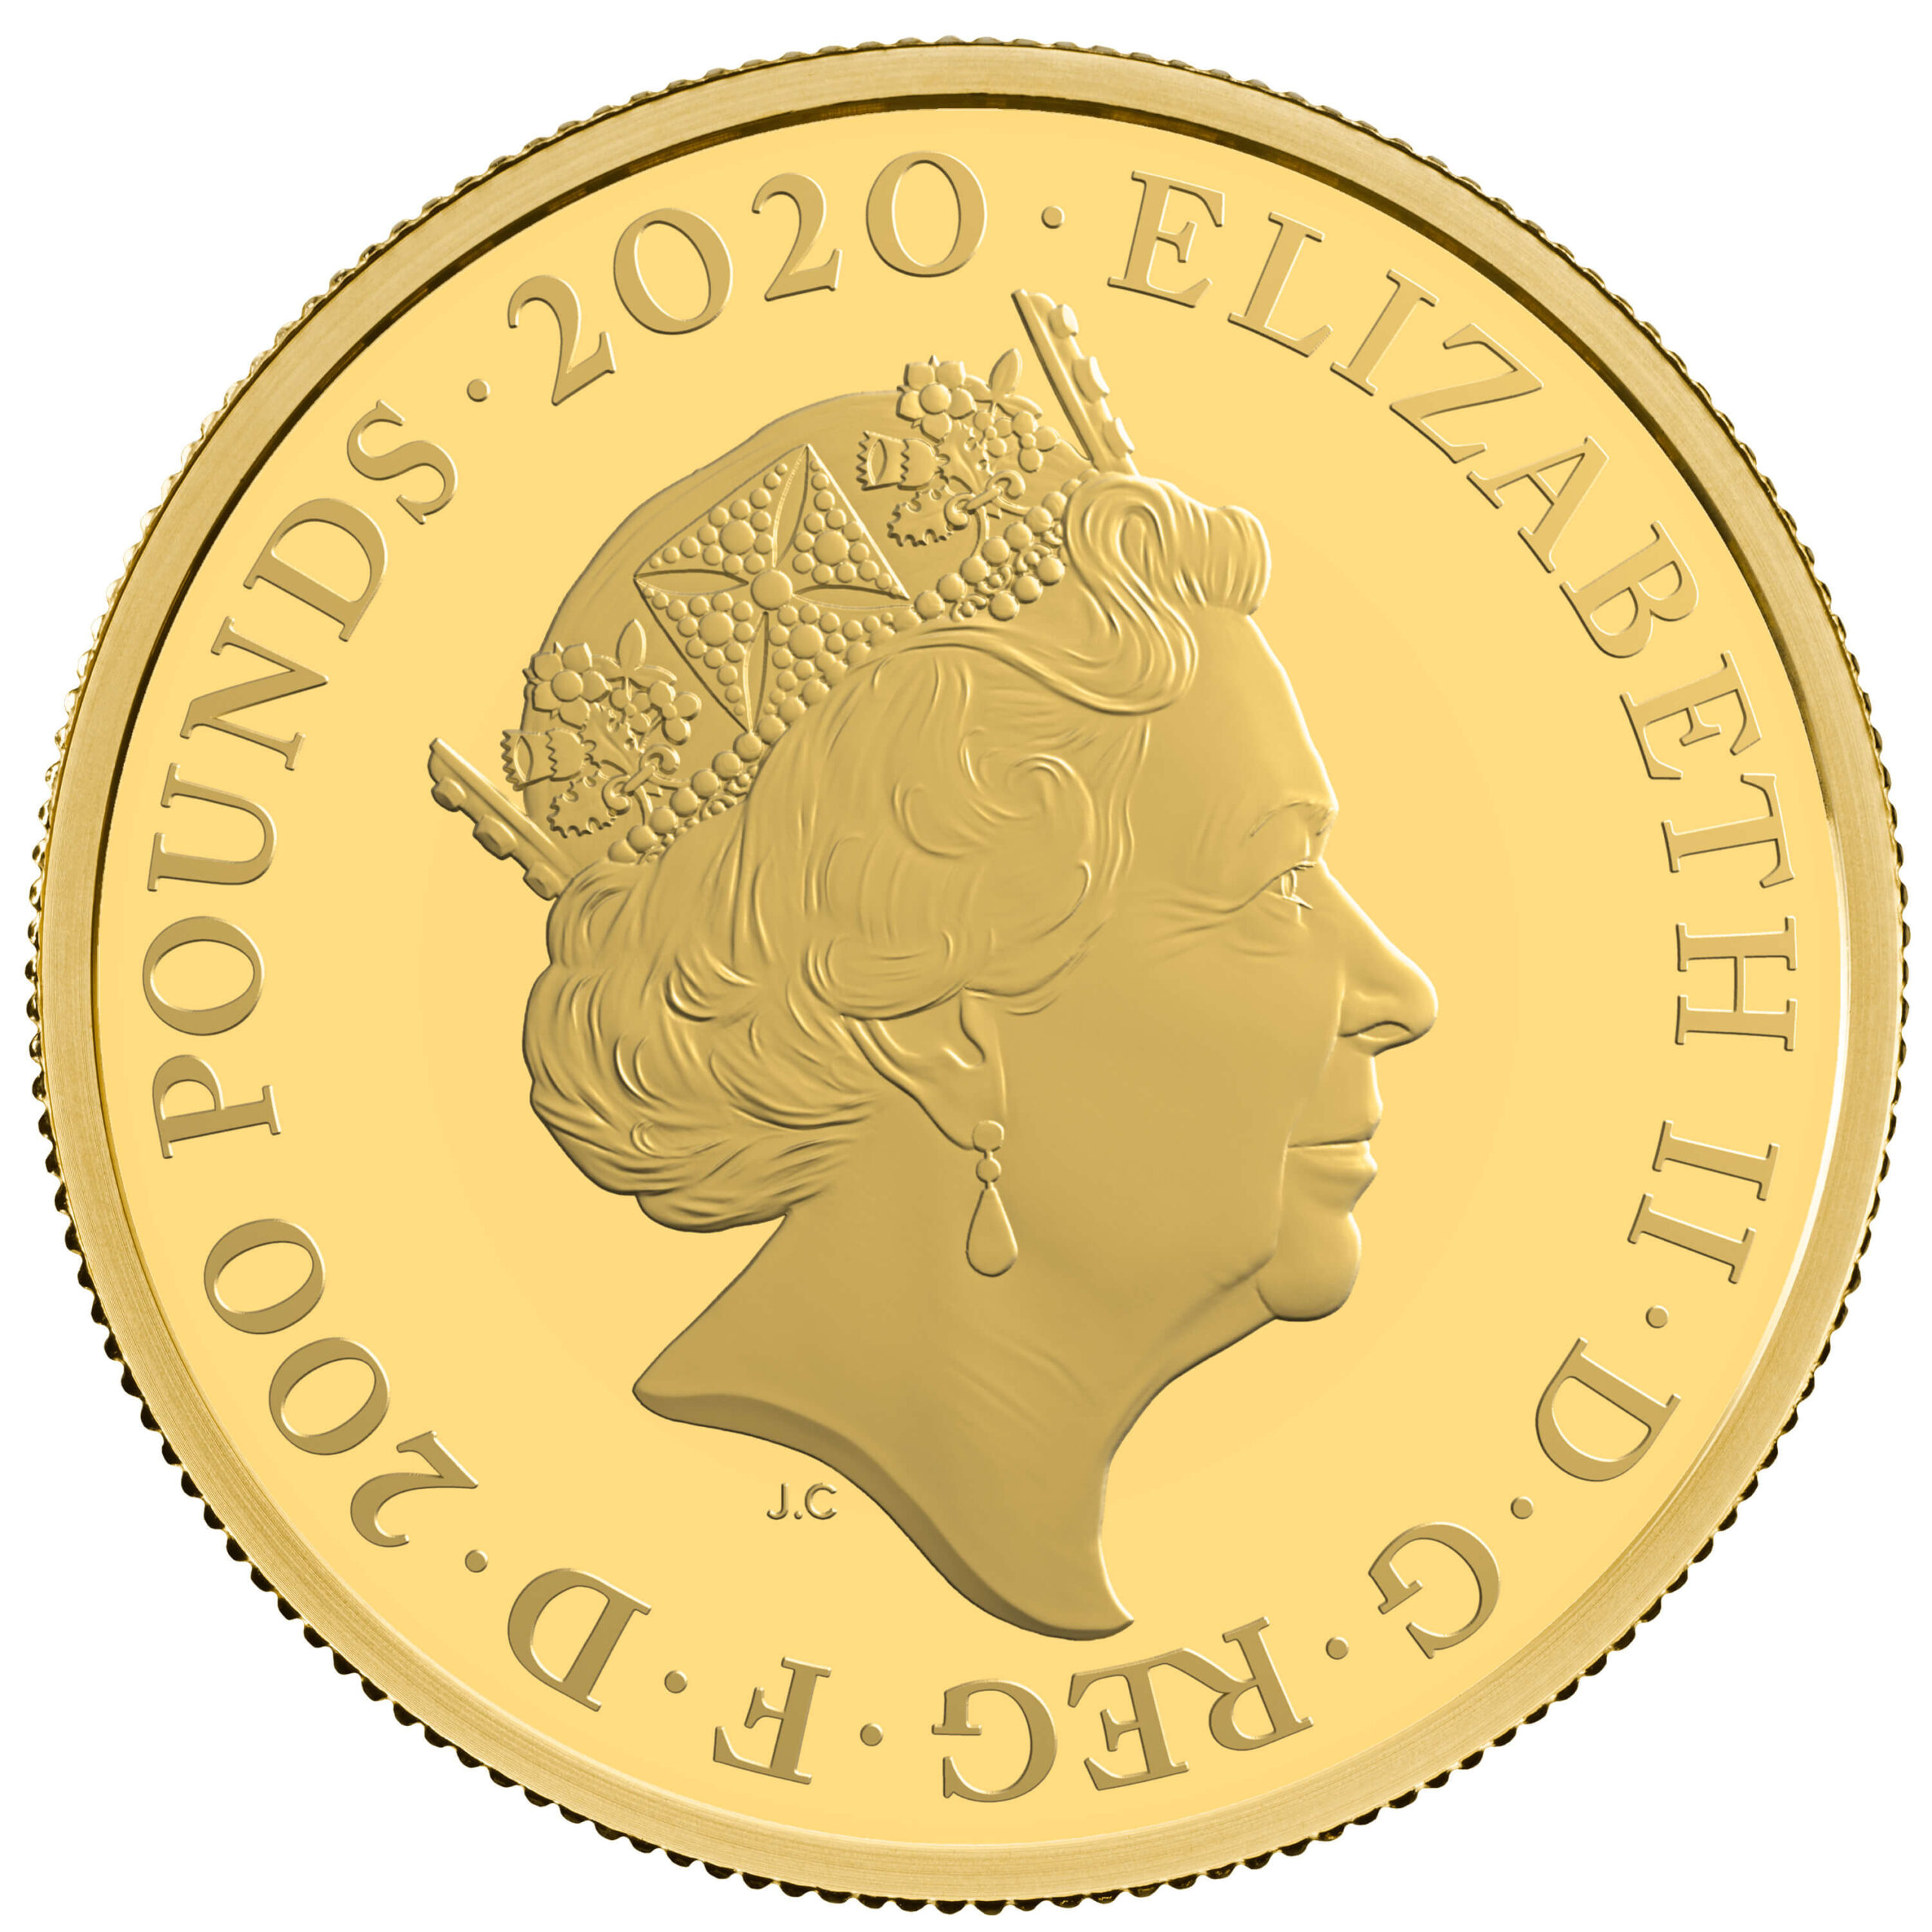 GB 200 Pounds 2020